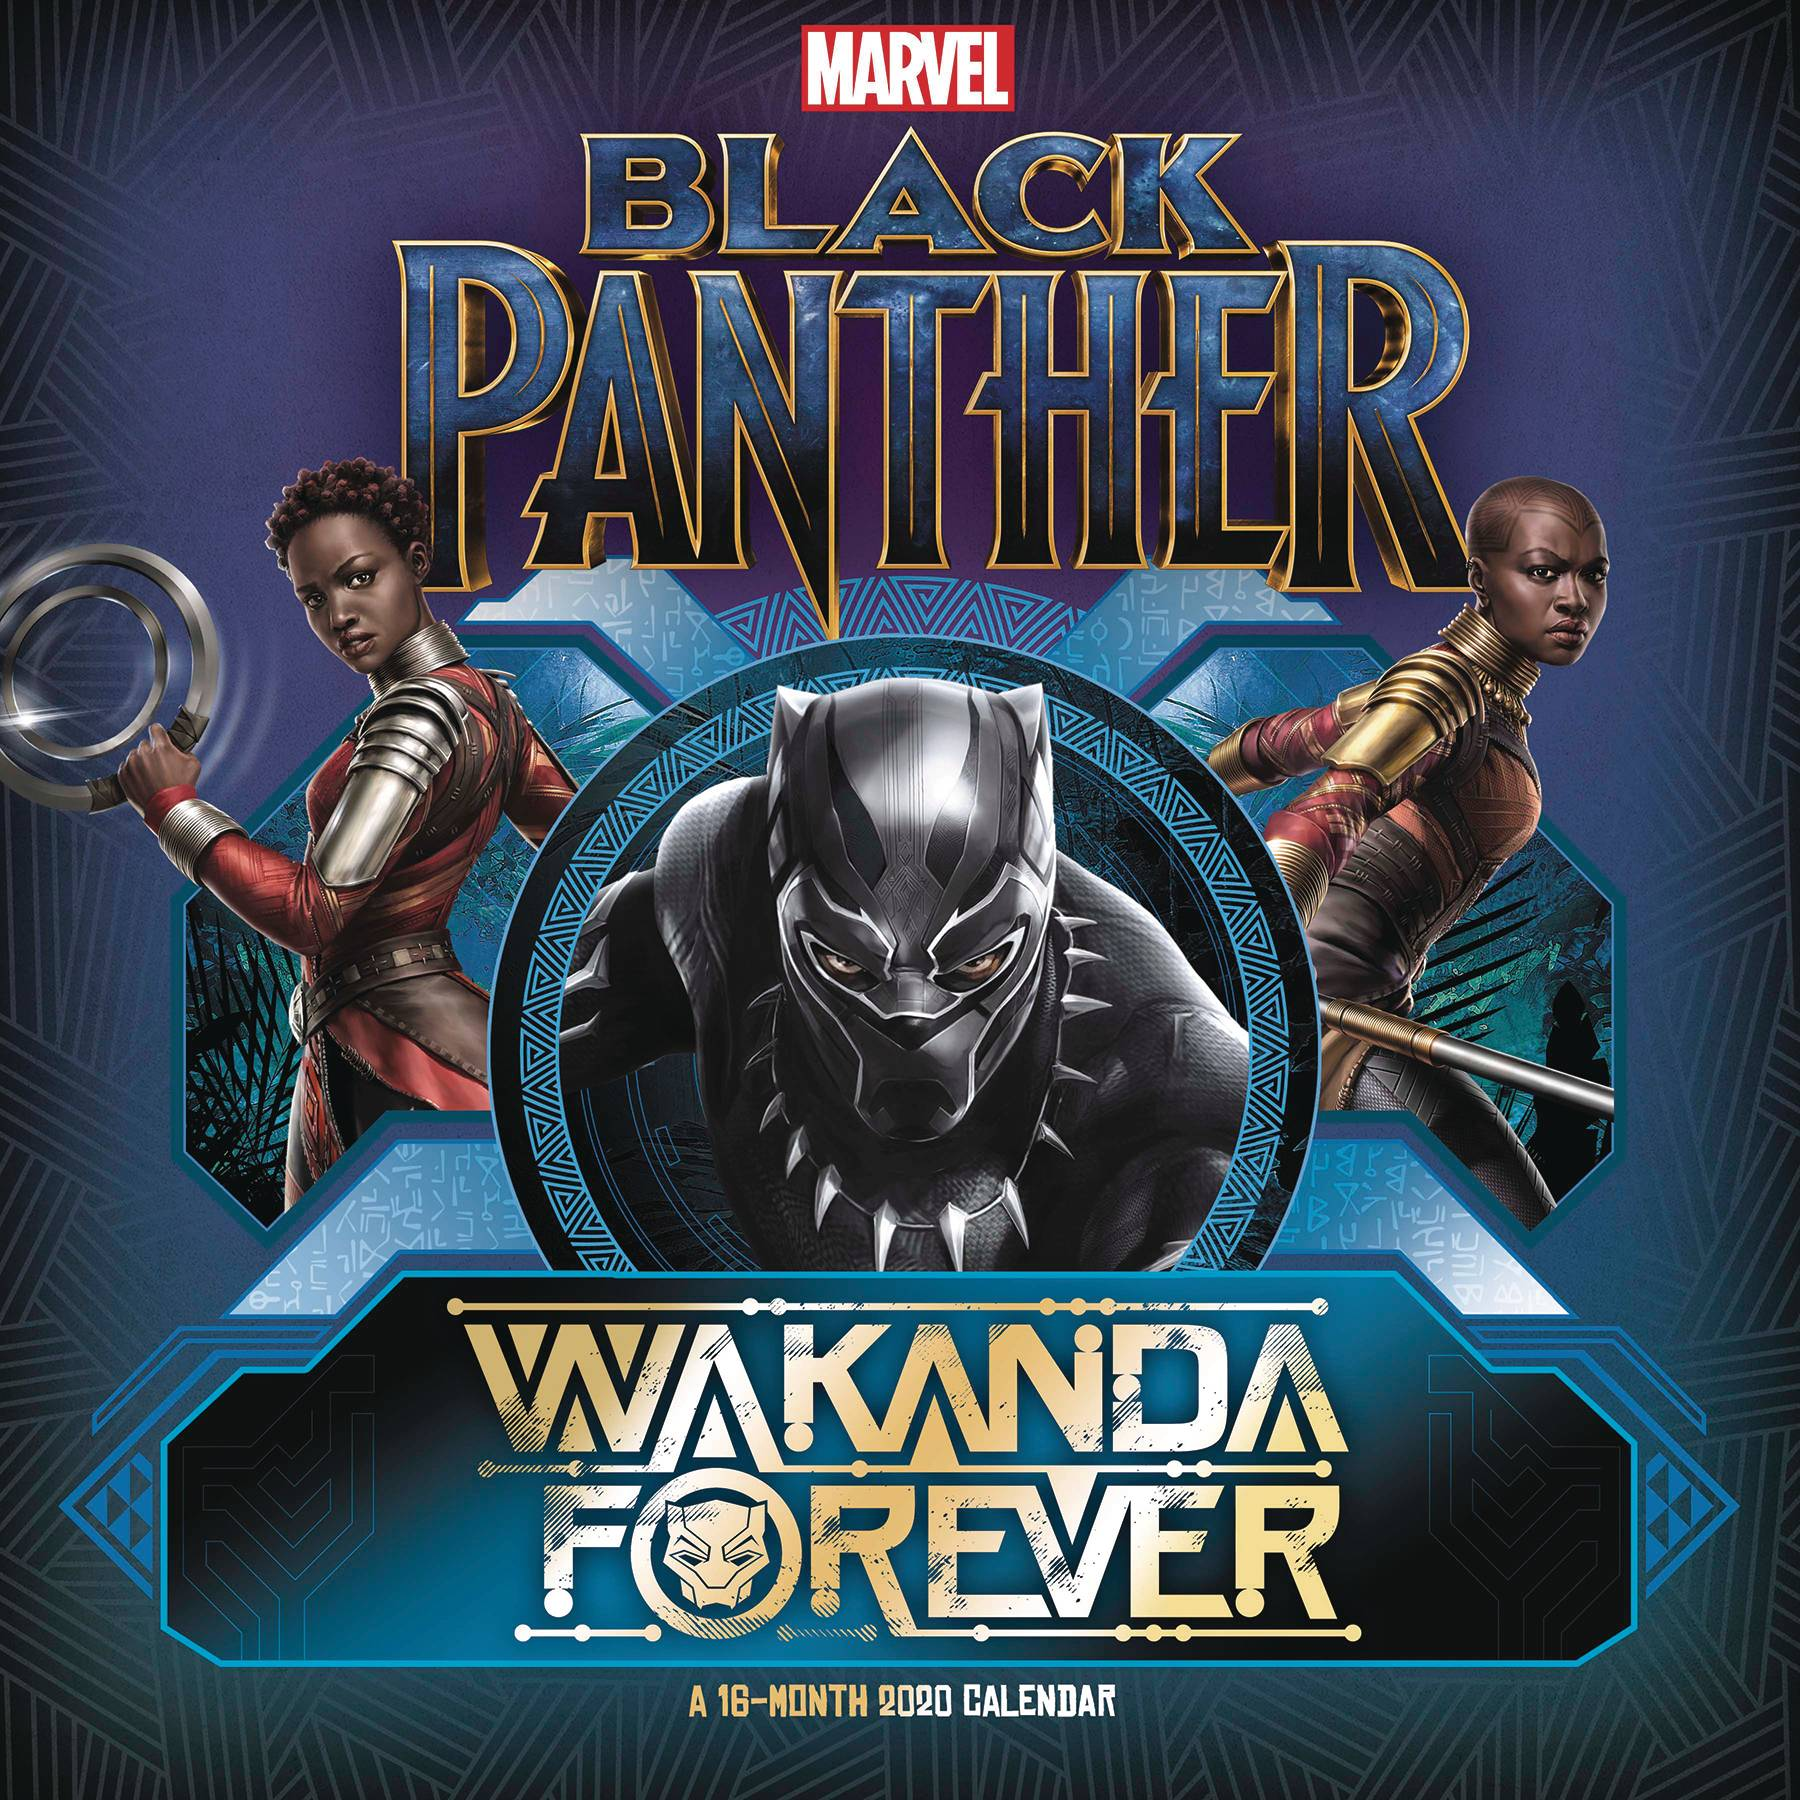 APR192406 - BLACK PANTHER WAKANDA FOREVER 2020 WALL CAL - Previews World